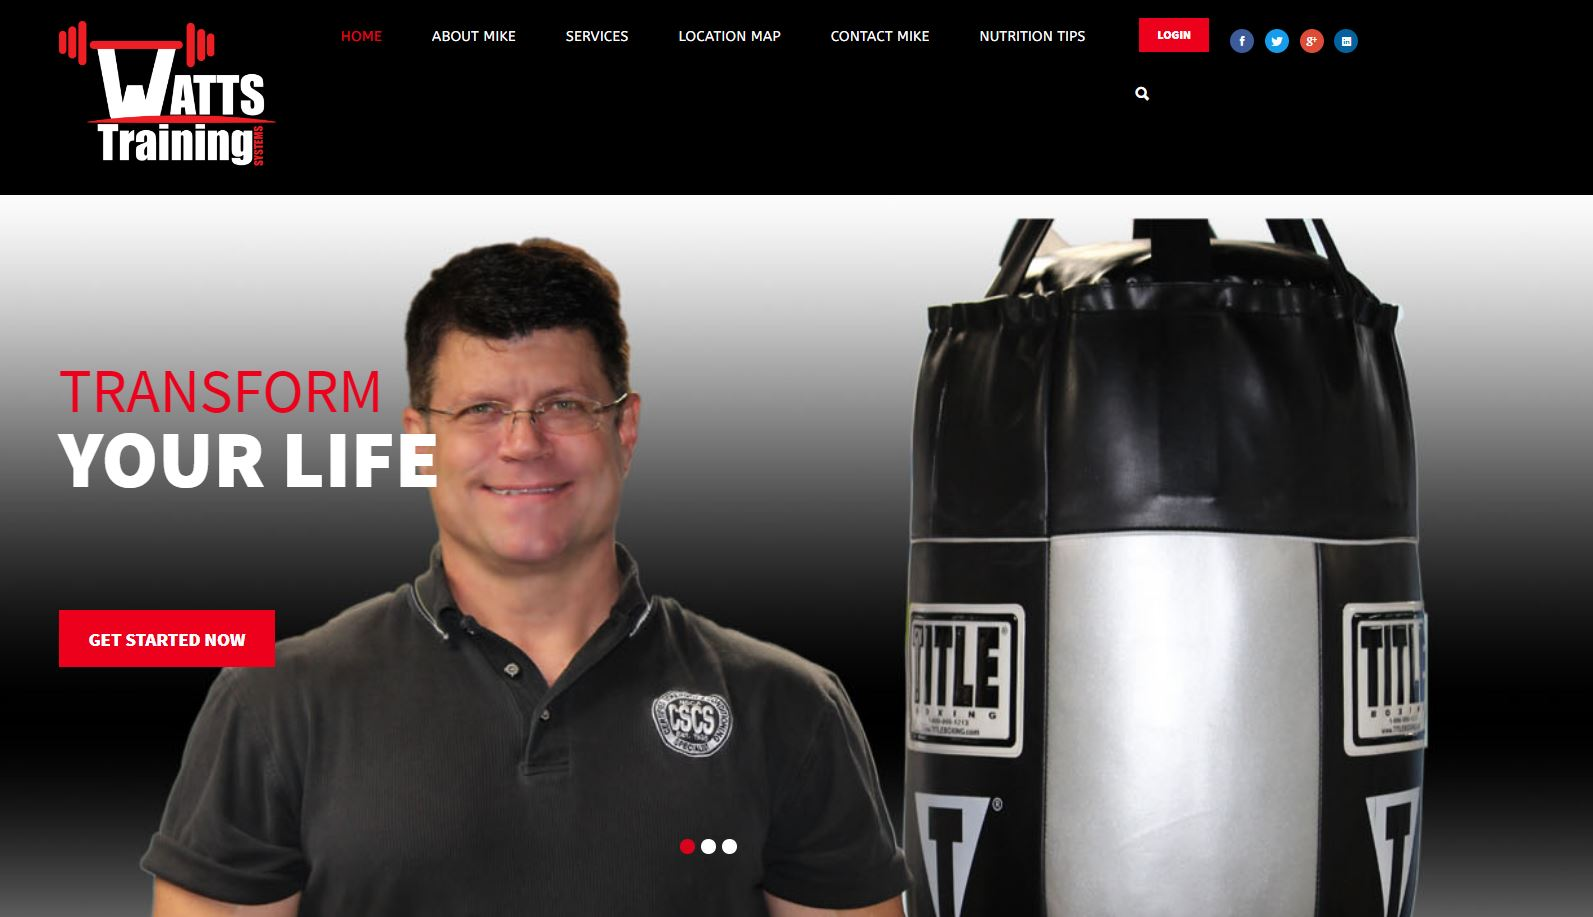 Watts Training - Website by Solia Media